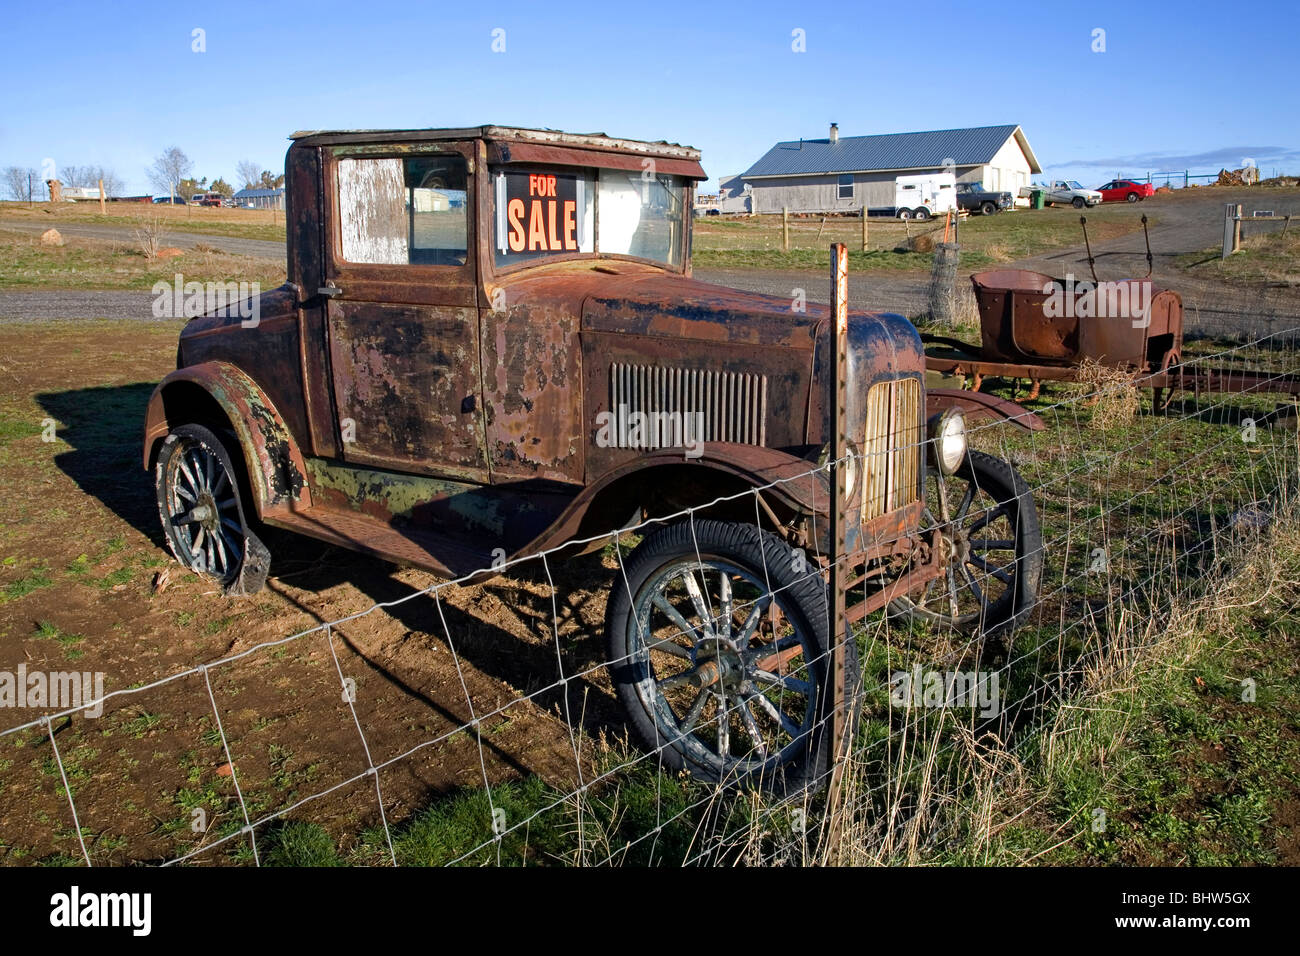 a for sale sign on an ancient rusted classic car in a field near stock photo royalty free image. Black Bedroom Furniture Sets. Home Design Ideas